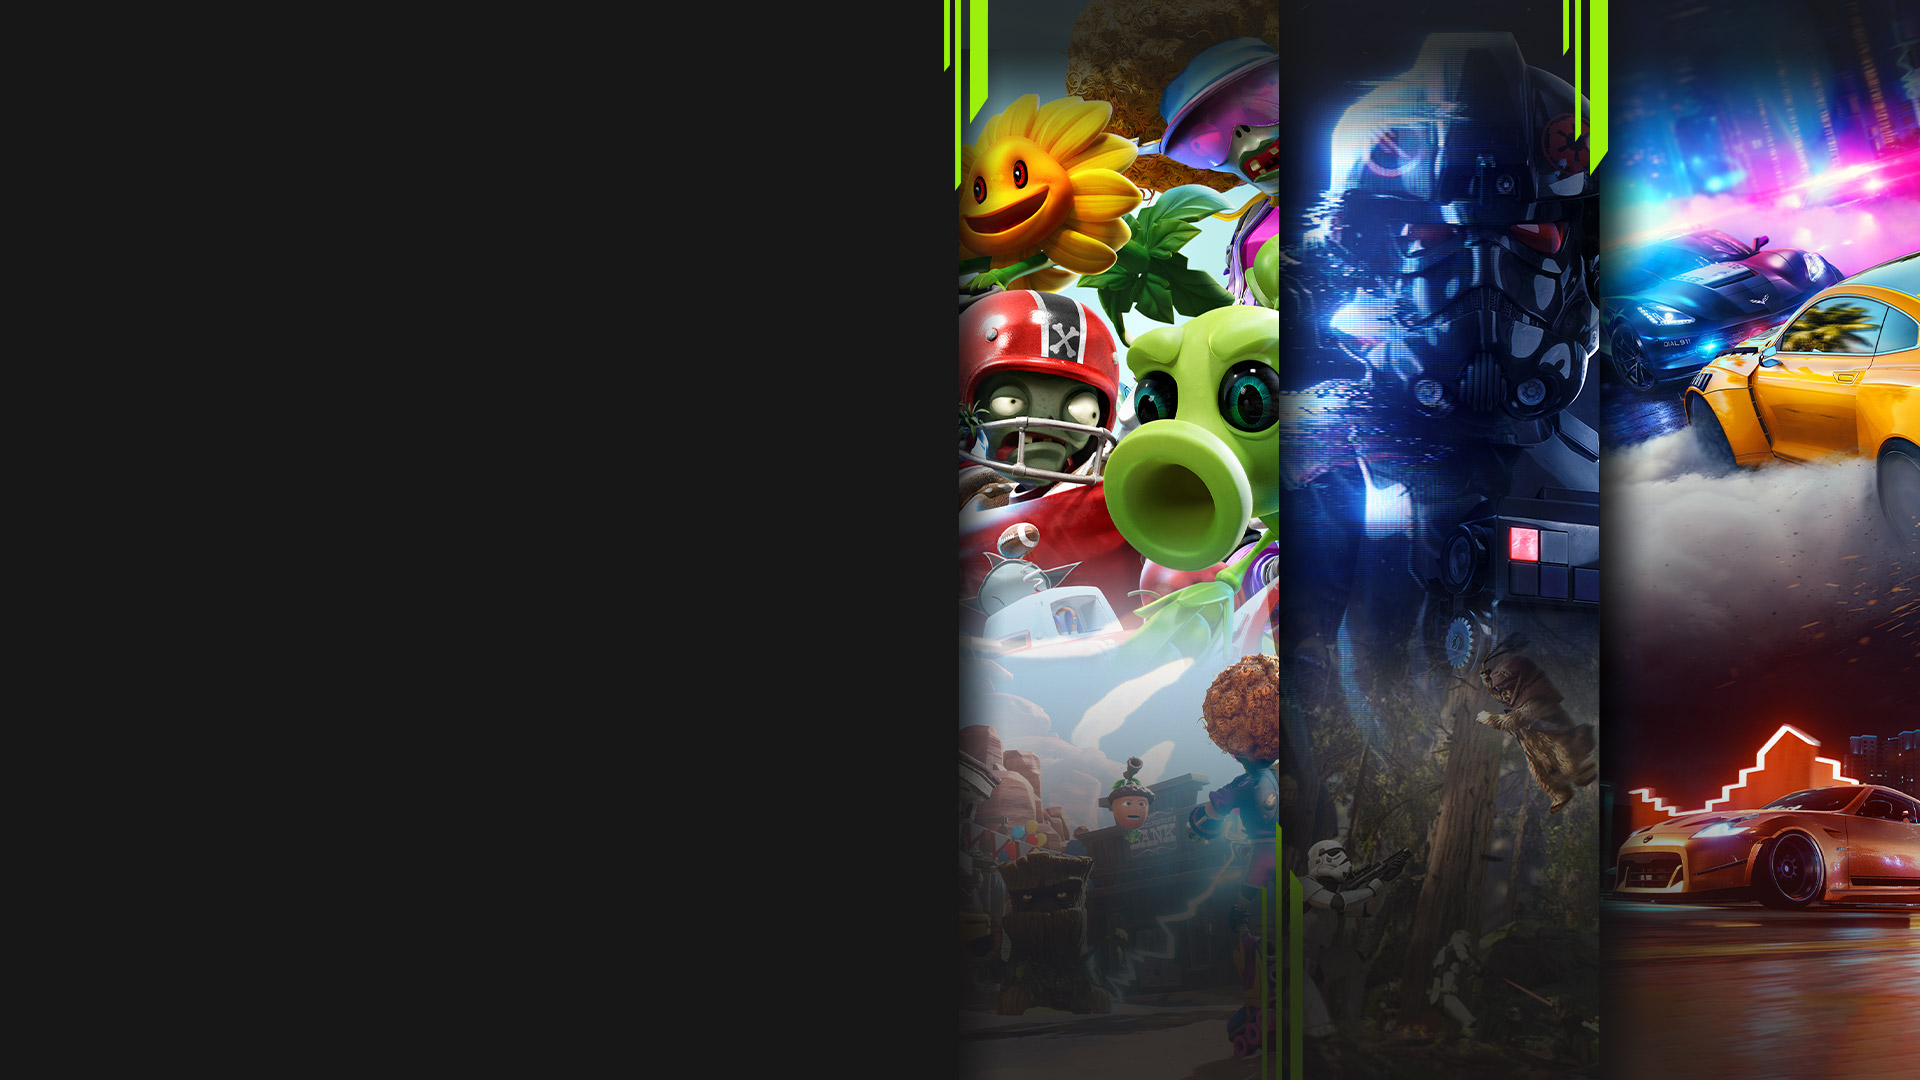 Game art from multiple EA games including Plants vs. Zombies: Battle for Neighborville, Star Wars Battlefront II and Need for Speed Heat.